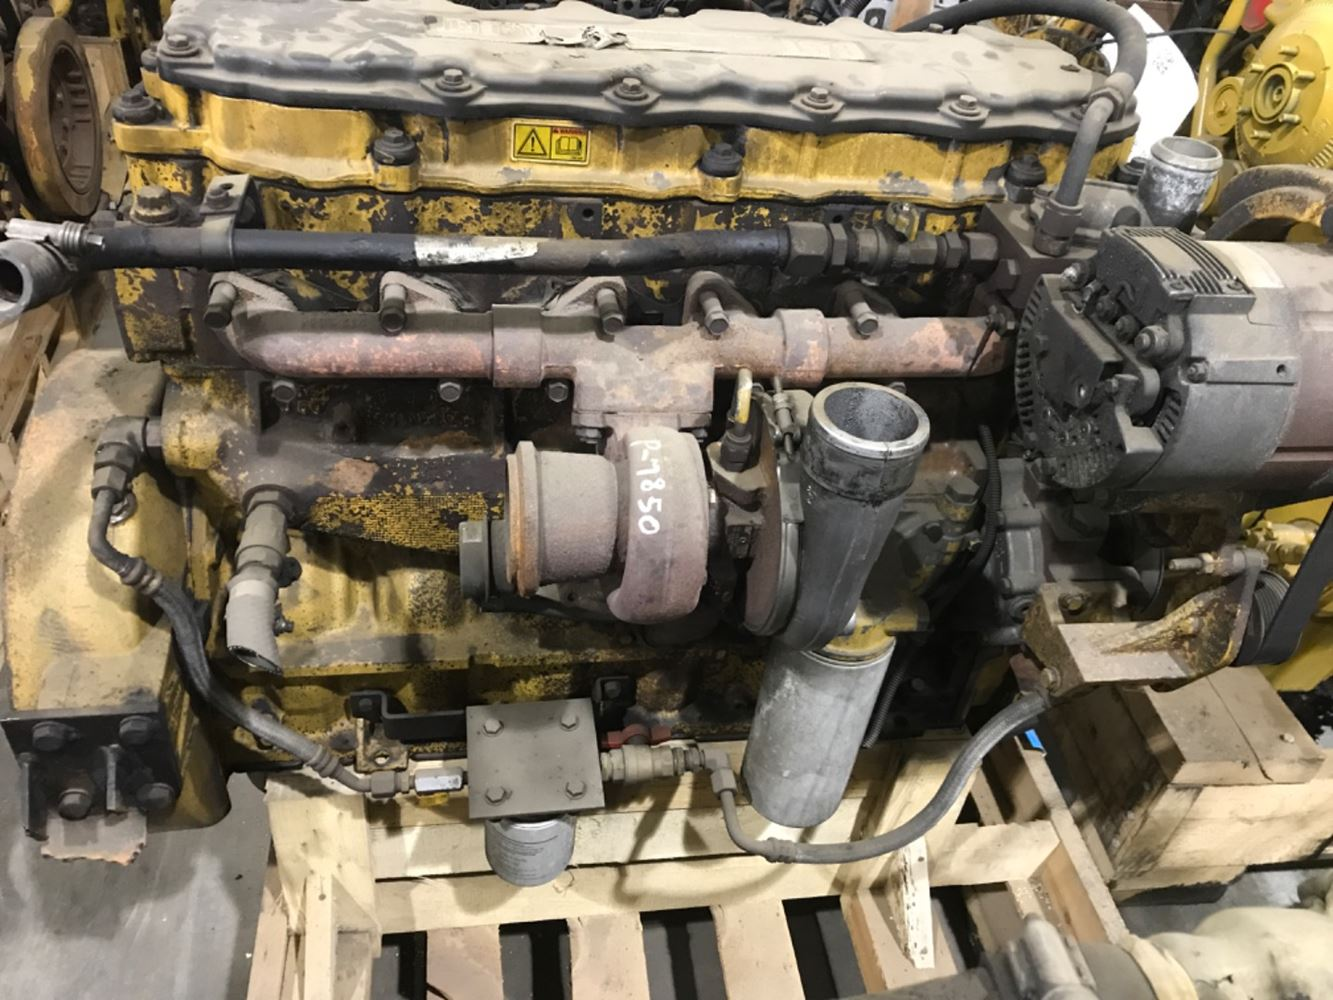 2006 CATERPILLAR C7 ENGINE ASSEMBLY TRUCK PARTS #679907